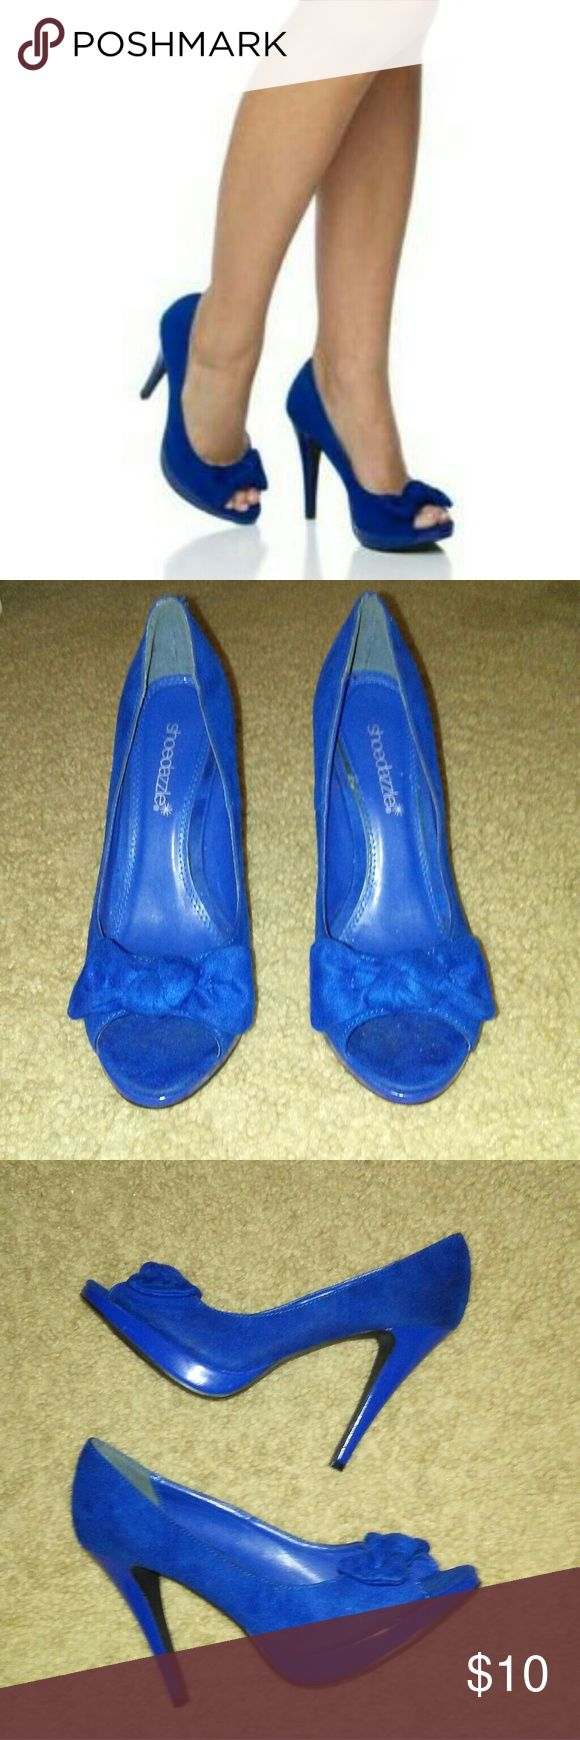 """🔹Shoe Dazzle """"Moxie"""" heels🔹 Beautiful blue peep toe heels with cute bow accent🔹 They're in good condition and still have plenty of life left in them. Shoe Dazzle Shoes Heels"""